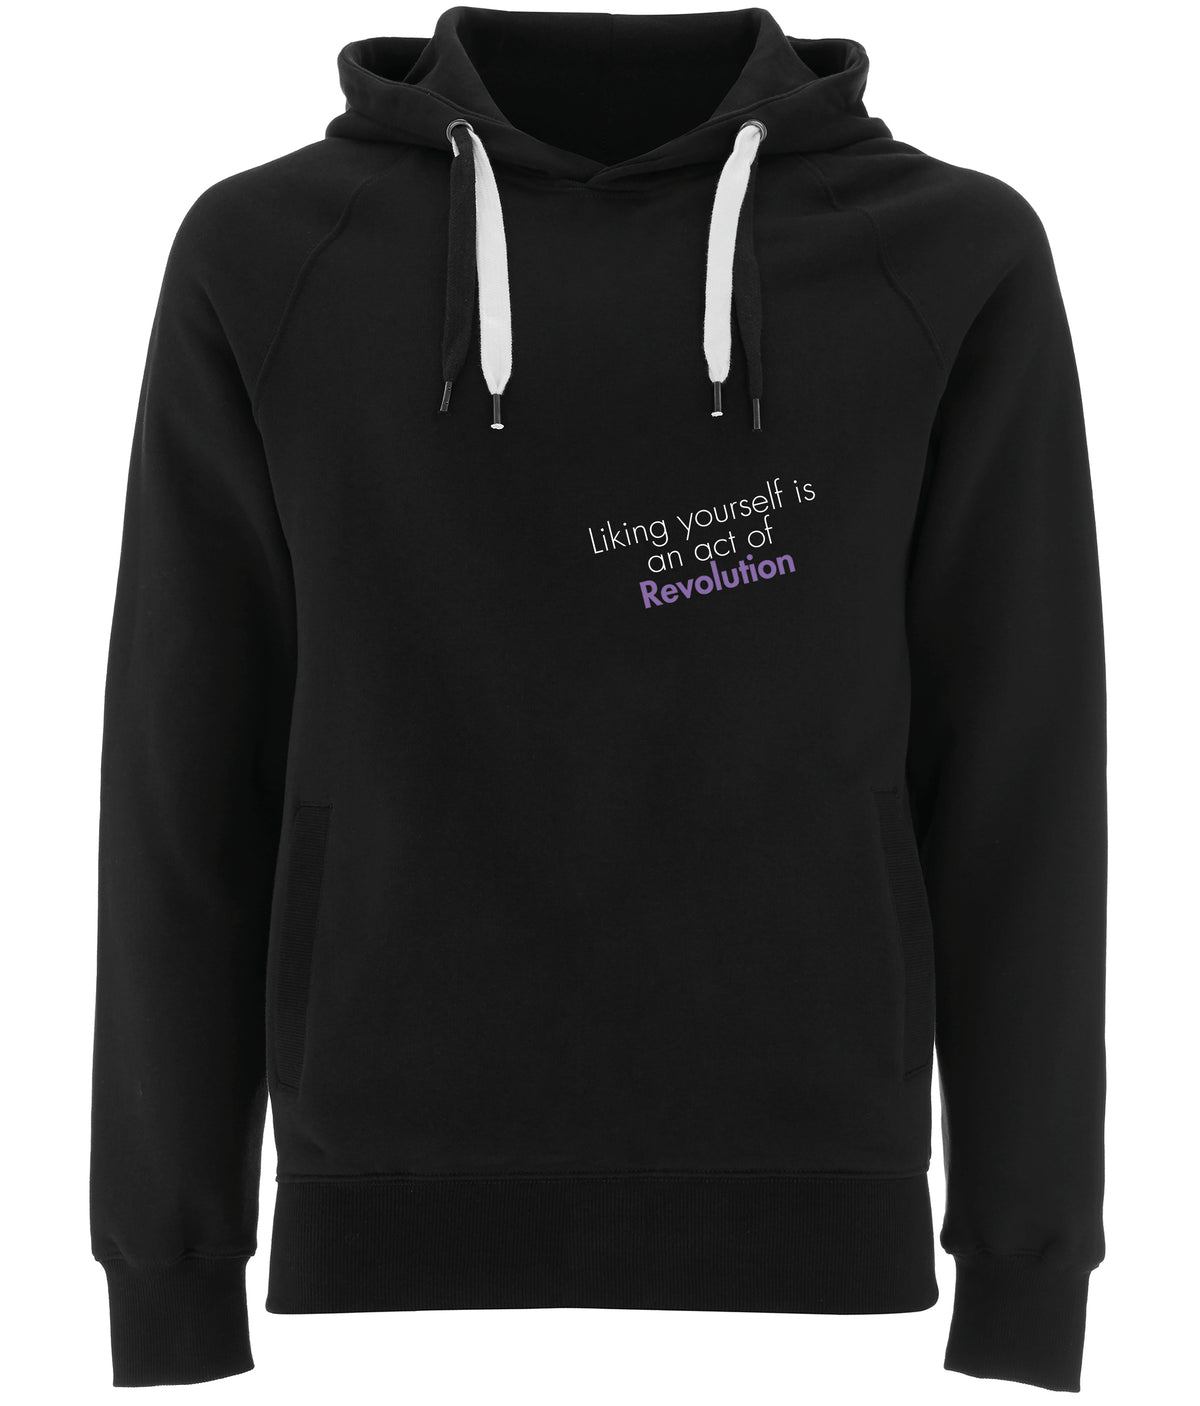 Liking Yourself Is An Act Of Revolution Organic Combed Cotton Hoodie Black